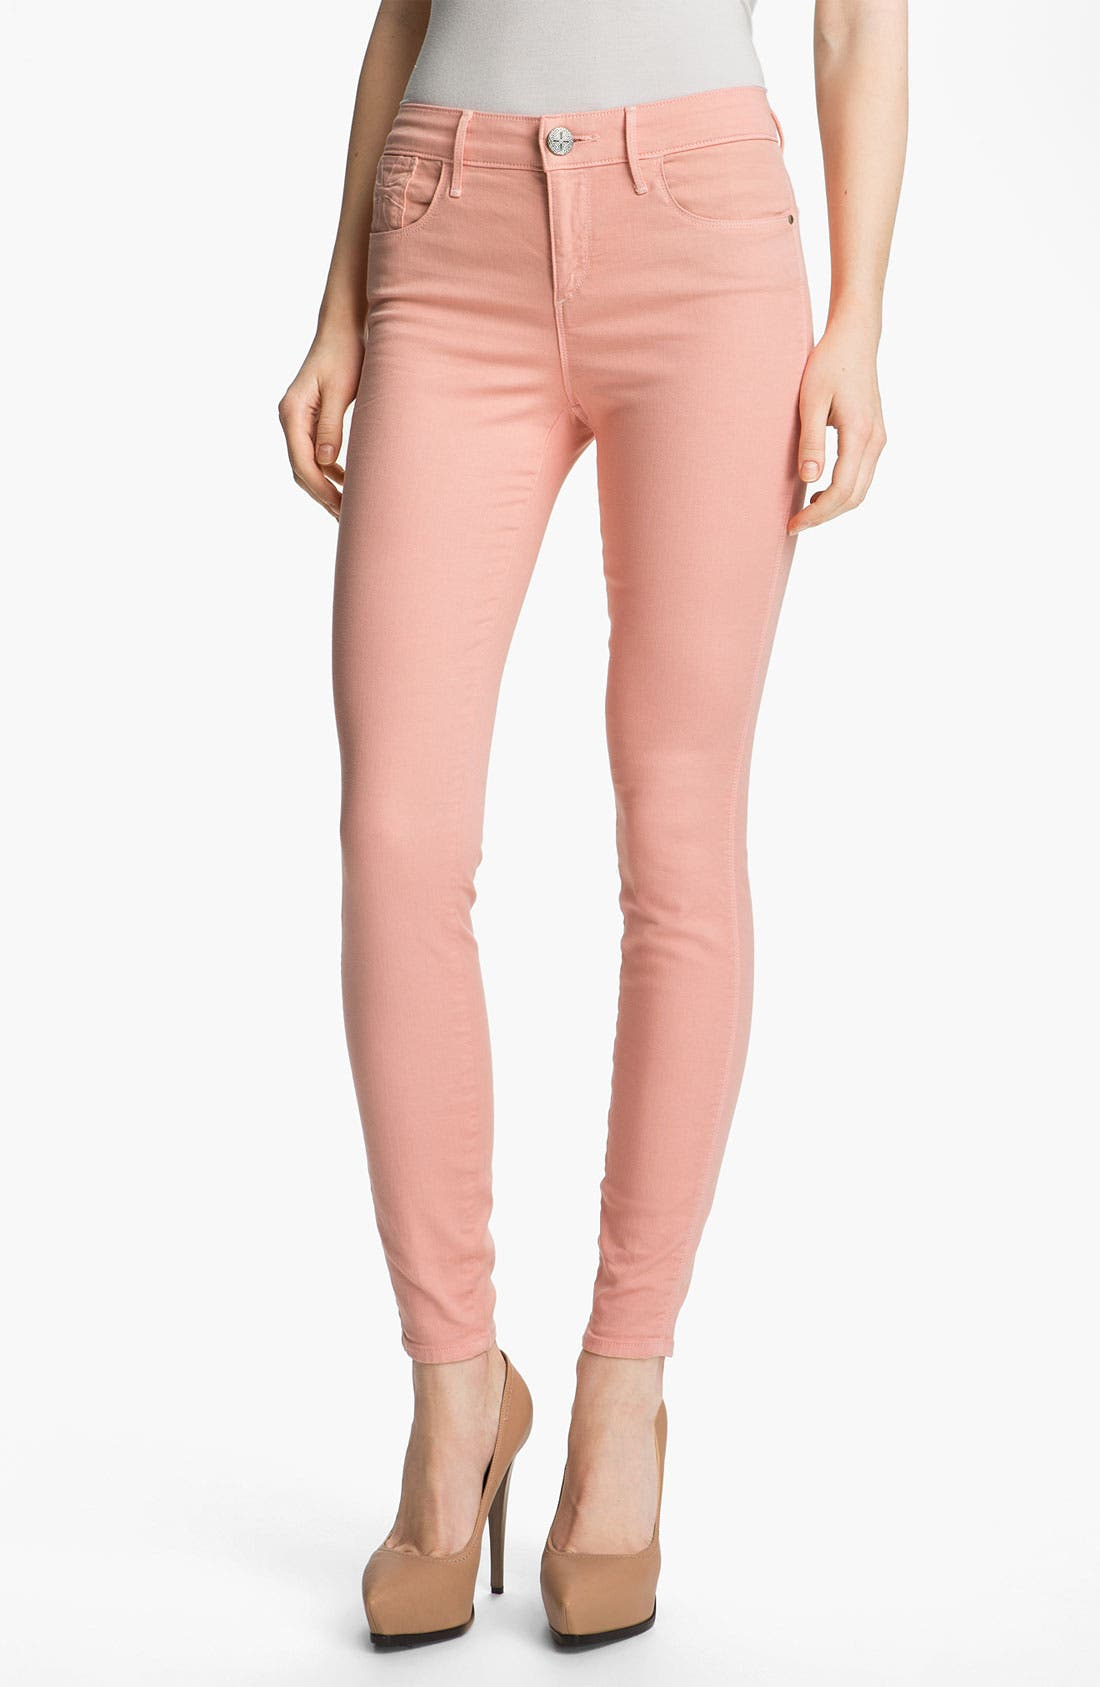 Alternate Image 1 Selected - Habitual 'Grace' High Rise Skinny Stretch Jeans